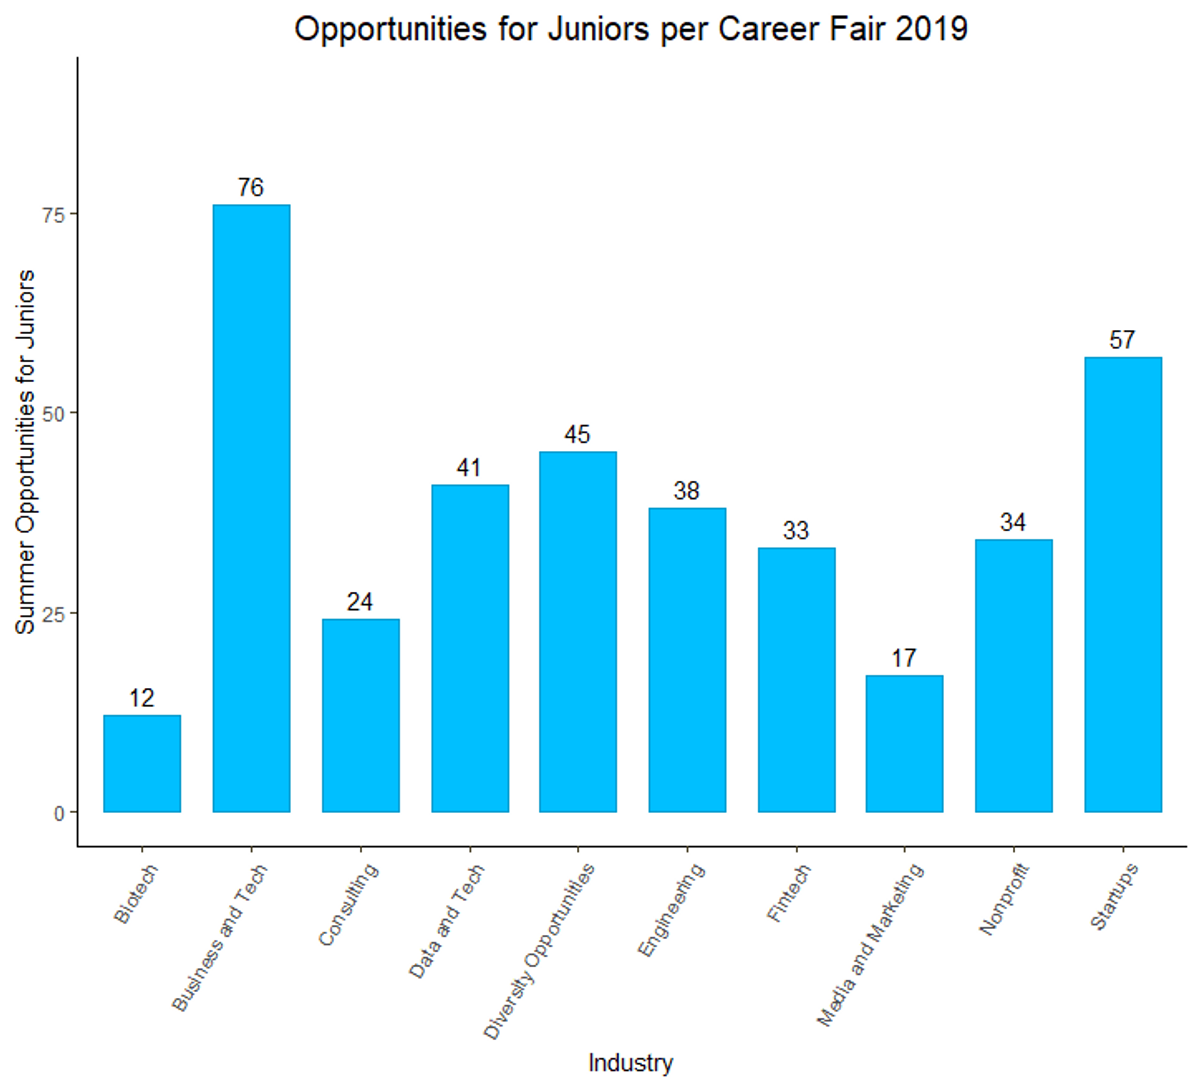 Opportunities for Juniors per Career Fair 2019